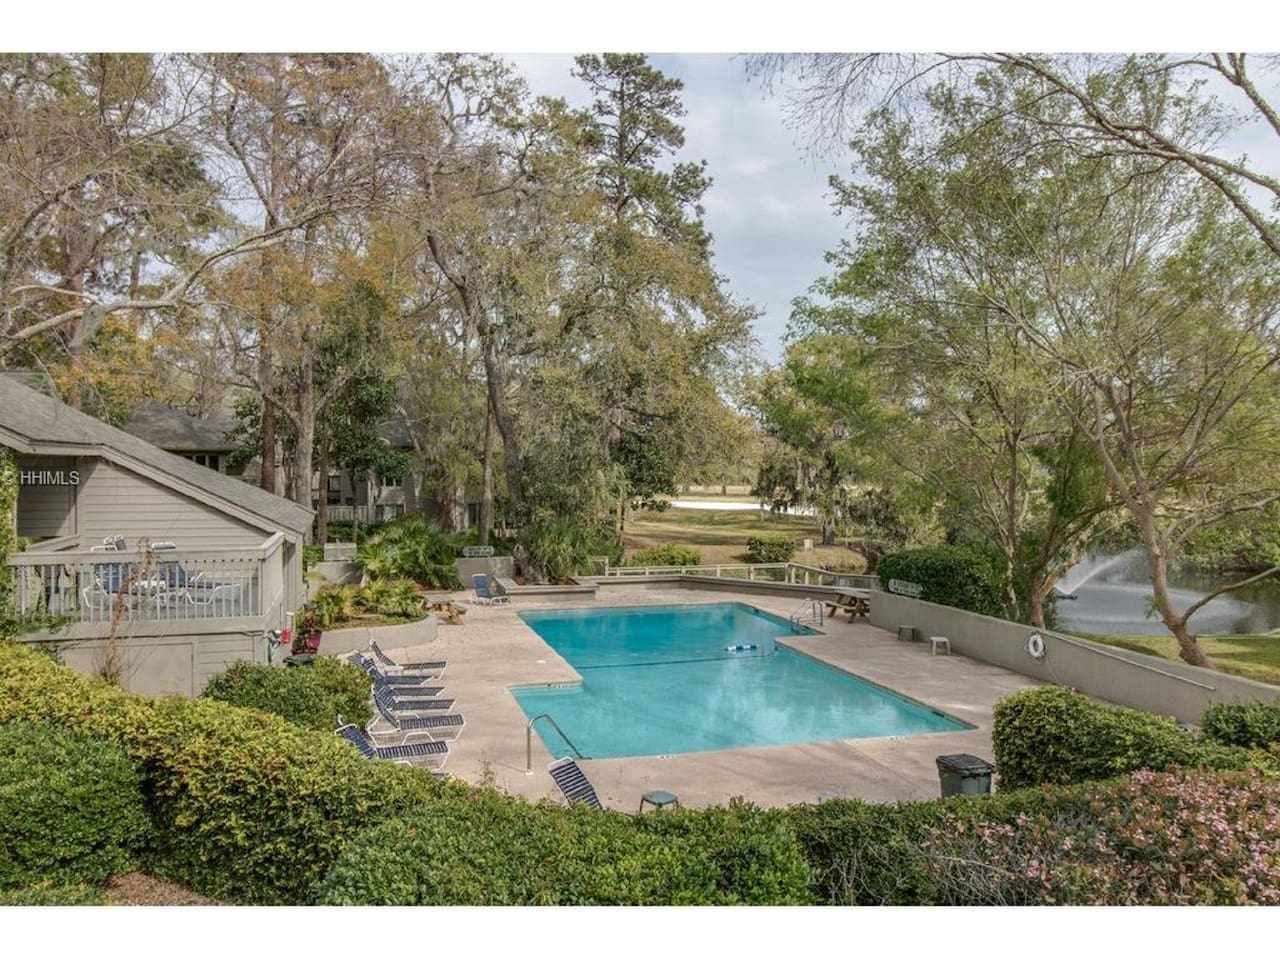 One of the best pools on the island.  Just steps away from condo. Large upper deck with bathrooms.